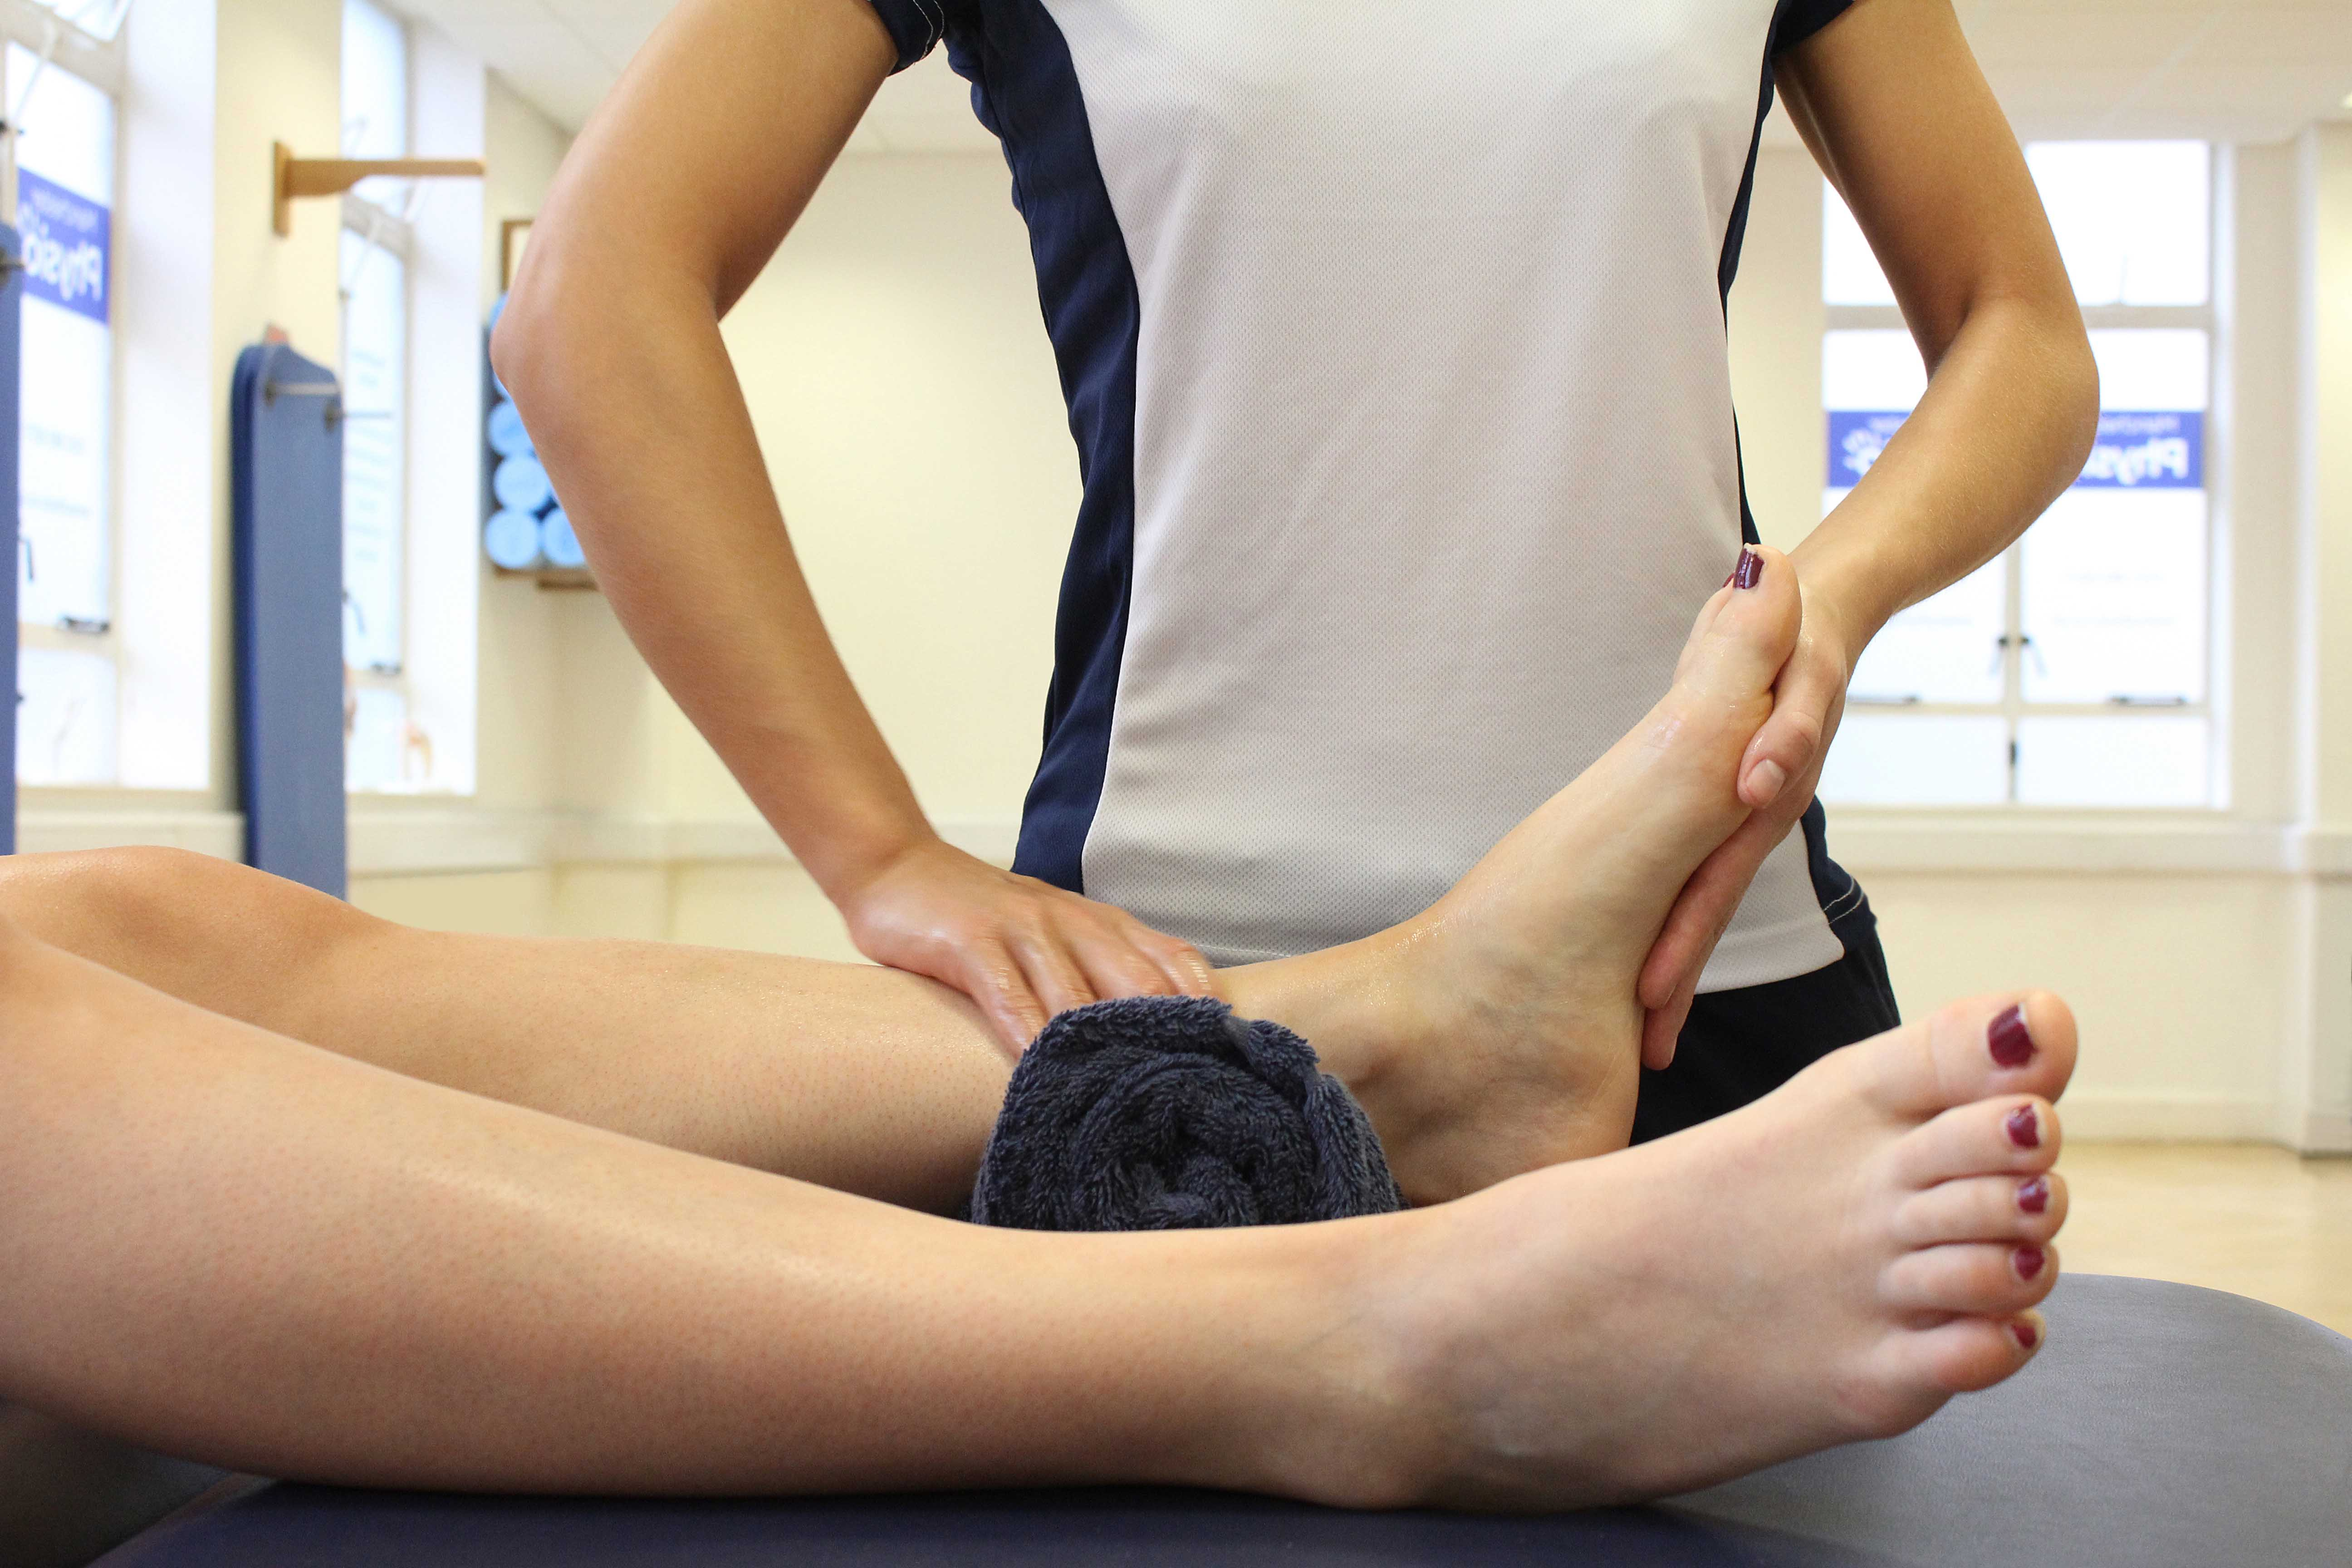 Mobilisations and stretches of the foot and ankle by specialised therapist